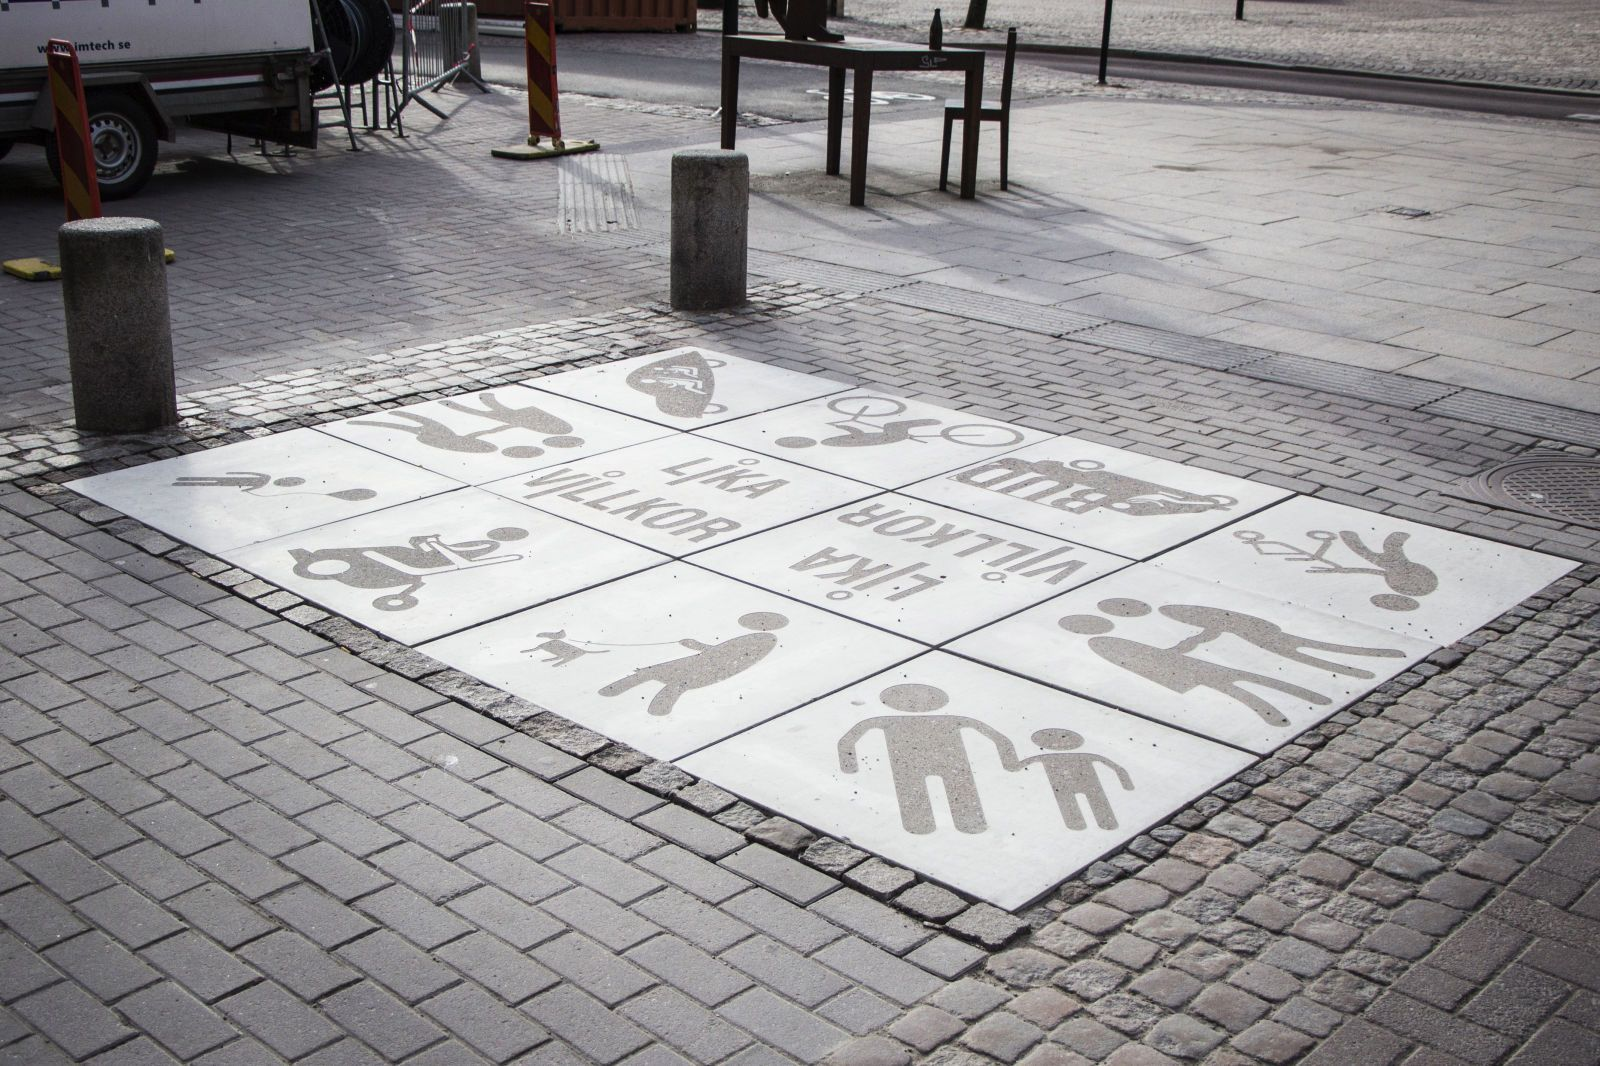 Graphic Concrete referenssi: Karlstad city, walking streets on equal terms